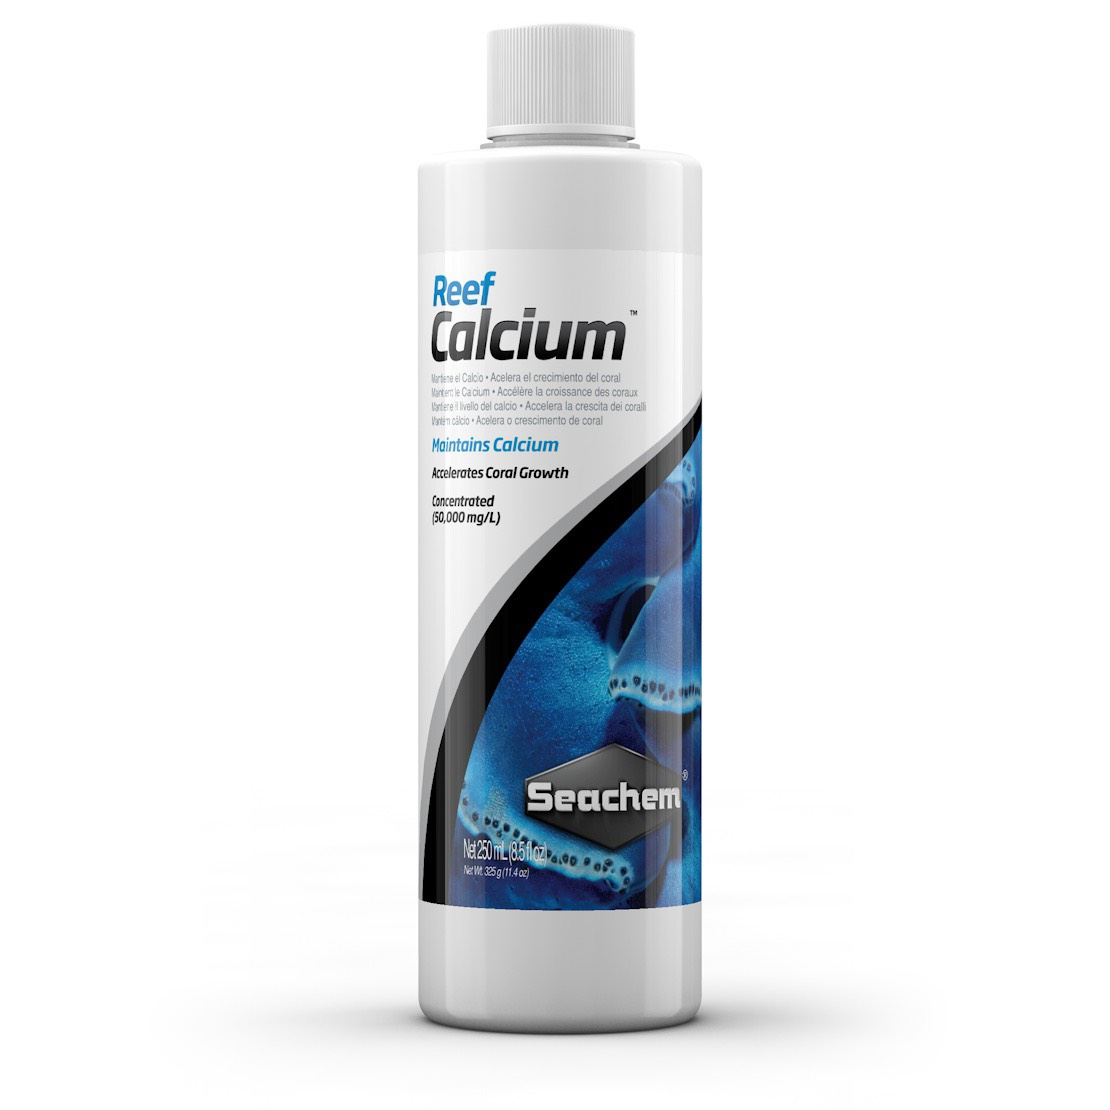 Seachem - Reef Calcium 250ml/8.5oz